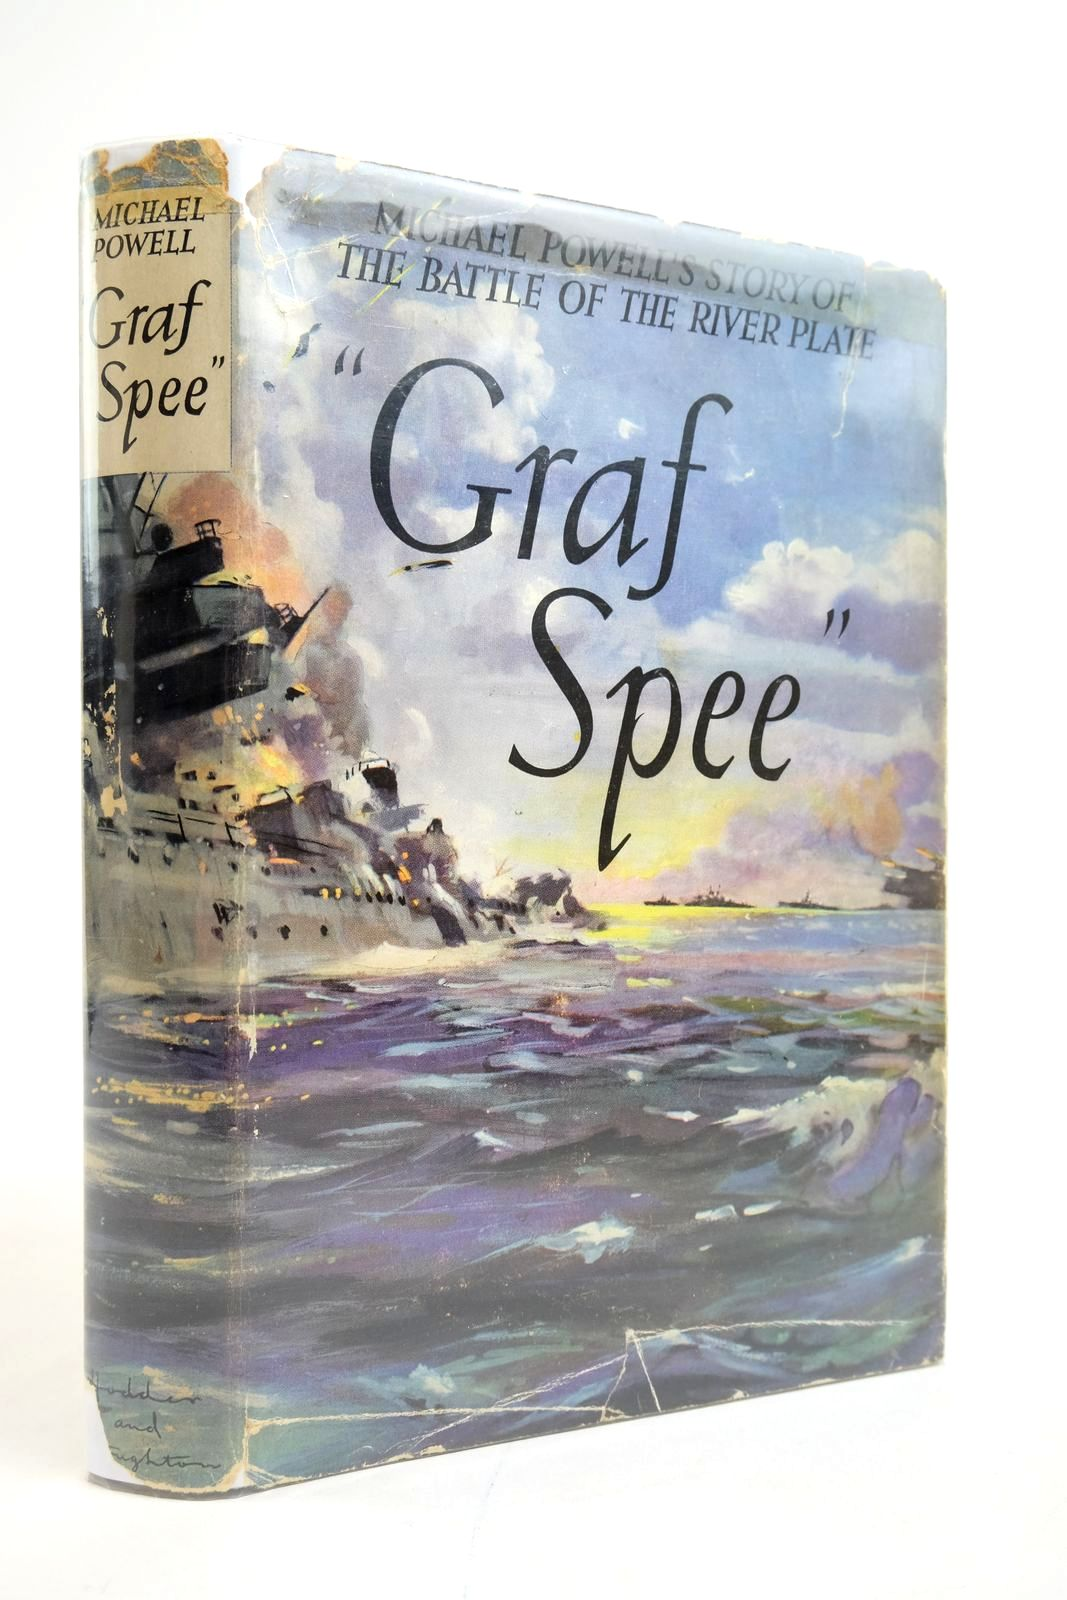 Photo of GRAF SPEE written by Powell, Michael published by Hodder & Stoughton (STOCK CODE: 2135261)  for sale by Stella & Rose's Books